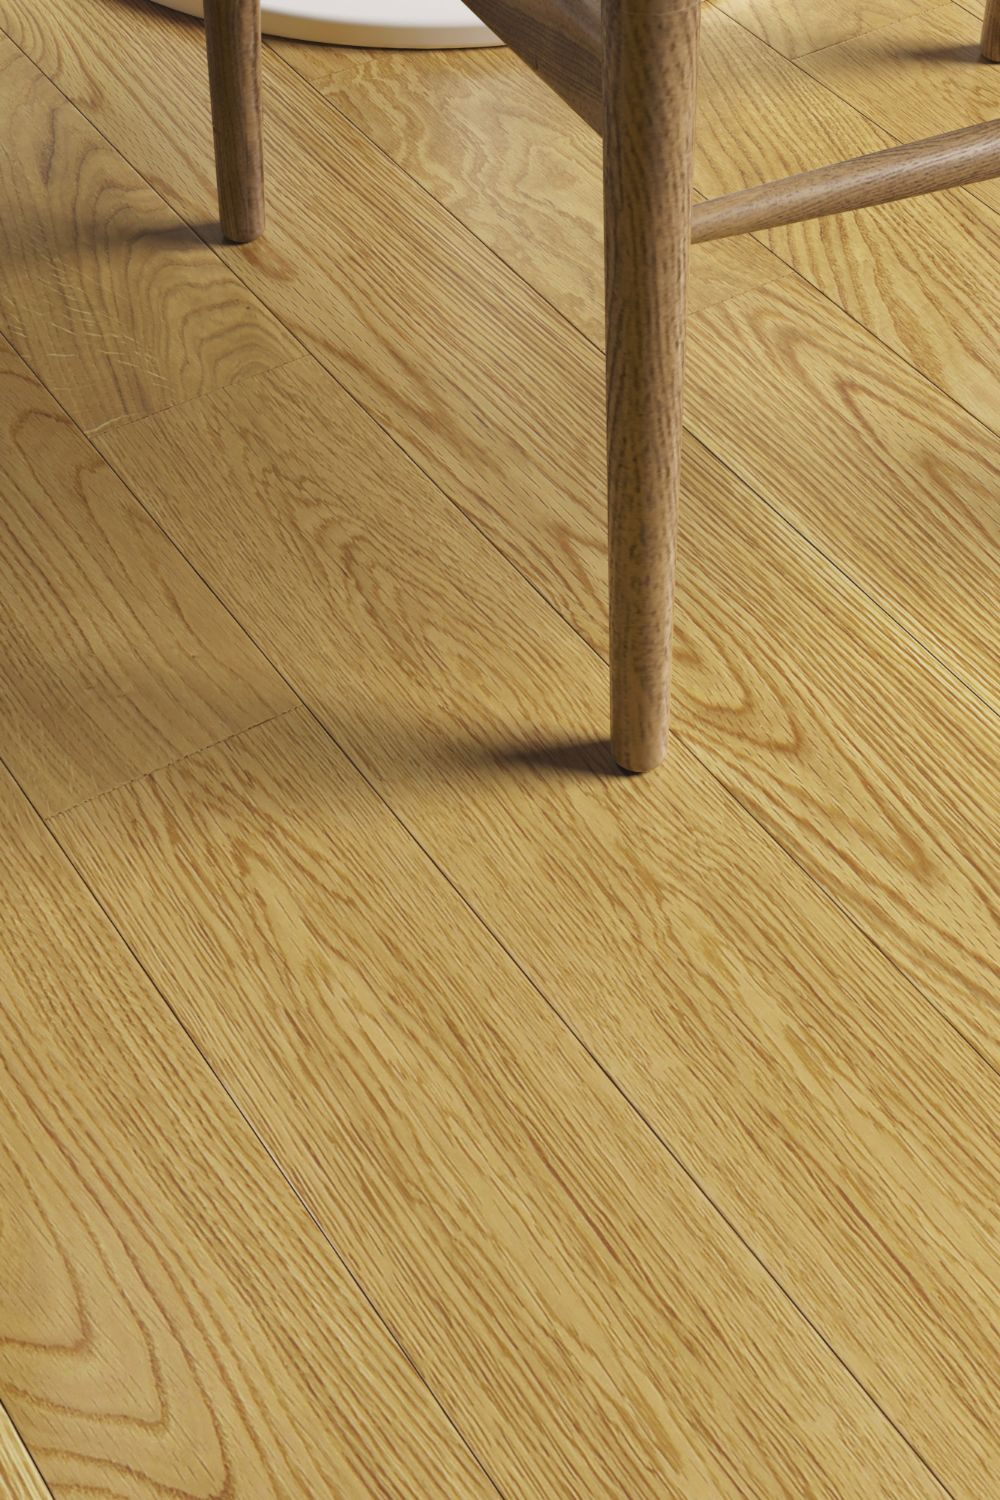 125mm Select Oak